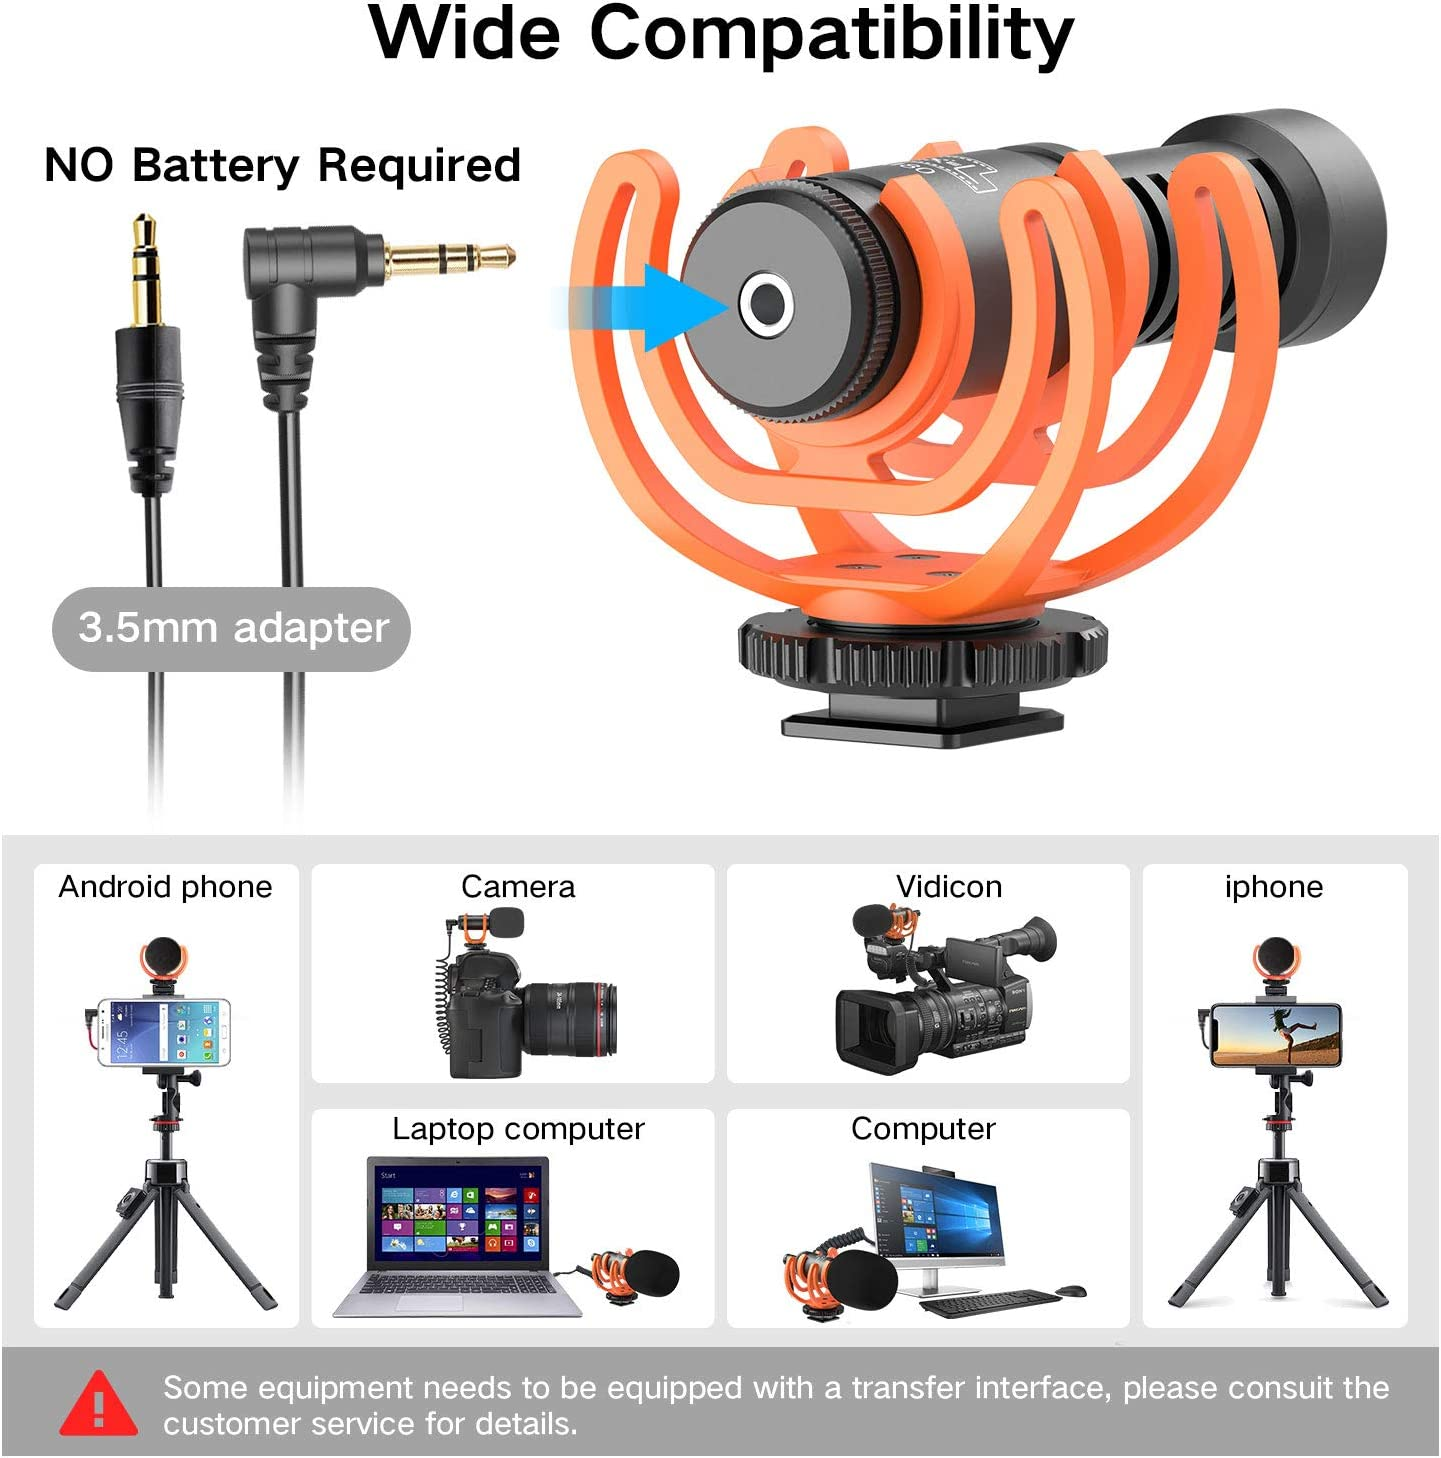 Pixel Shotgun Mic with Lightning Cable,Professional Smartphone Camera Video Microphone Kit for iPhone,Canon,Nikon,Sony DSLR,Cardioid videomicro Perfect for Recording YouTube,Interview